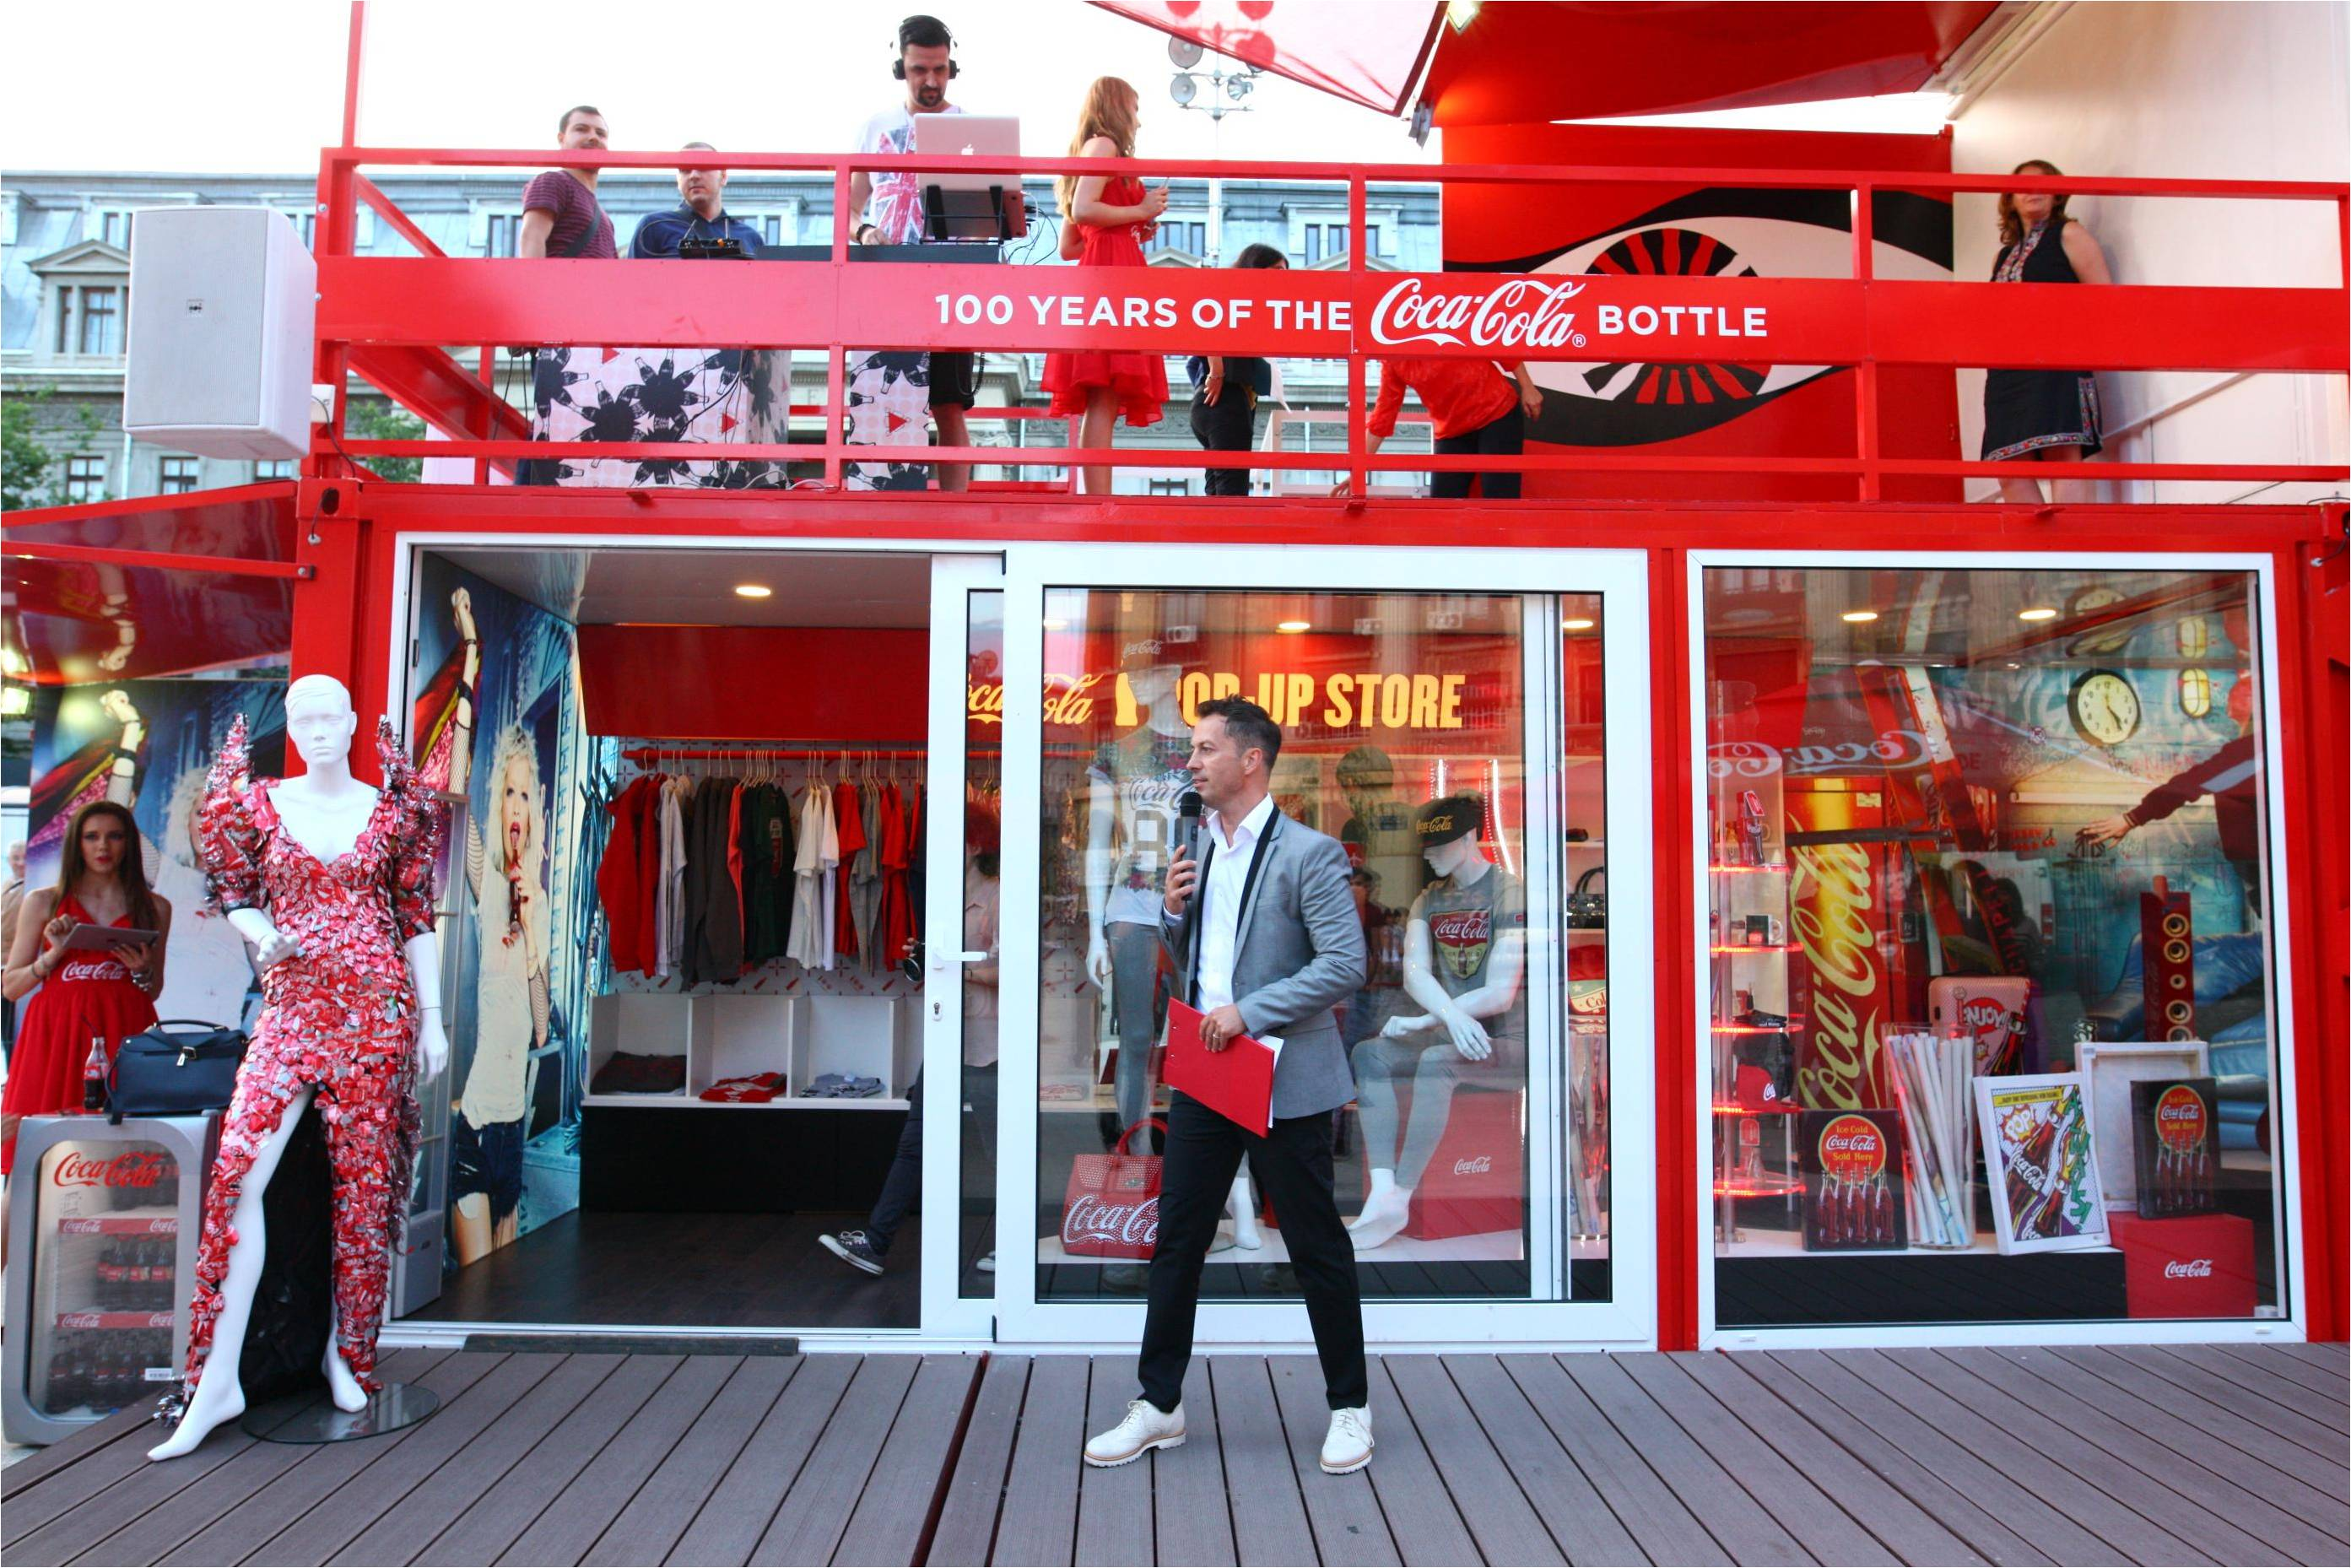 Coca-Cola POP-UP STORE a ajuns în Piața Universității